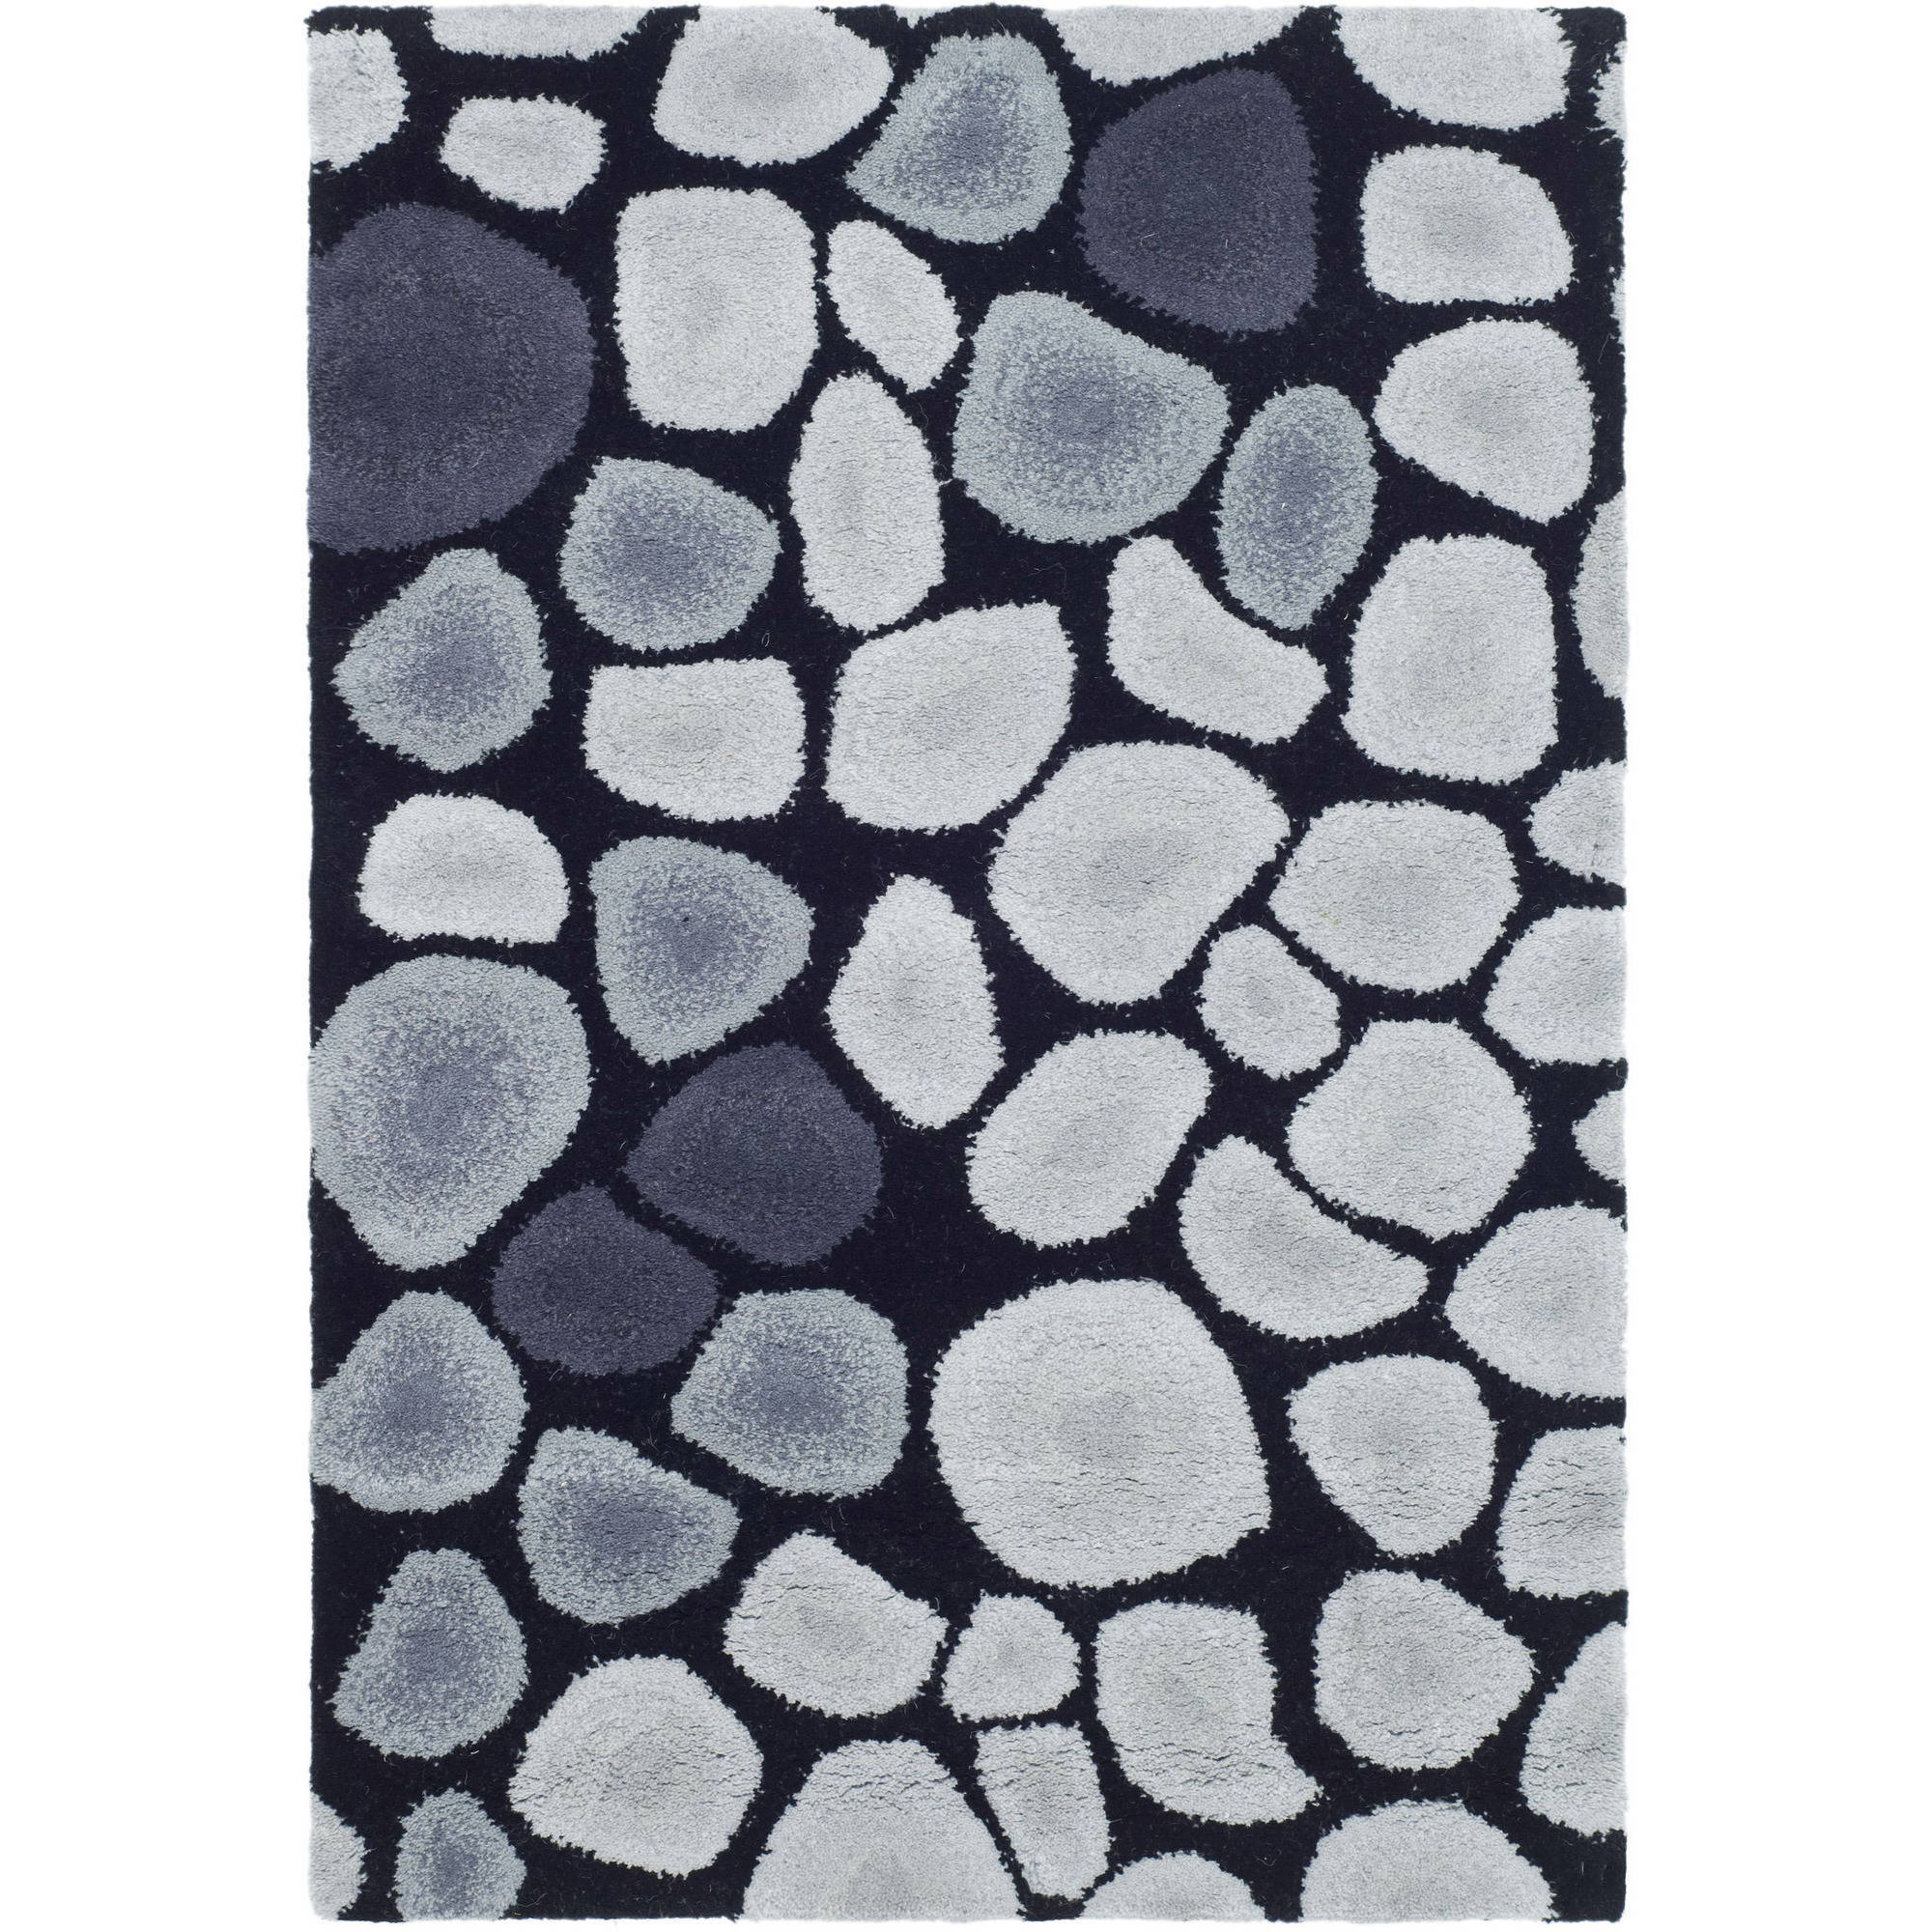 Safavieh Soho Stones Accent Area Rug, Gray and Black